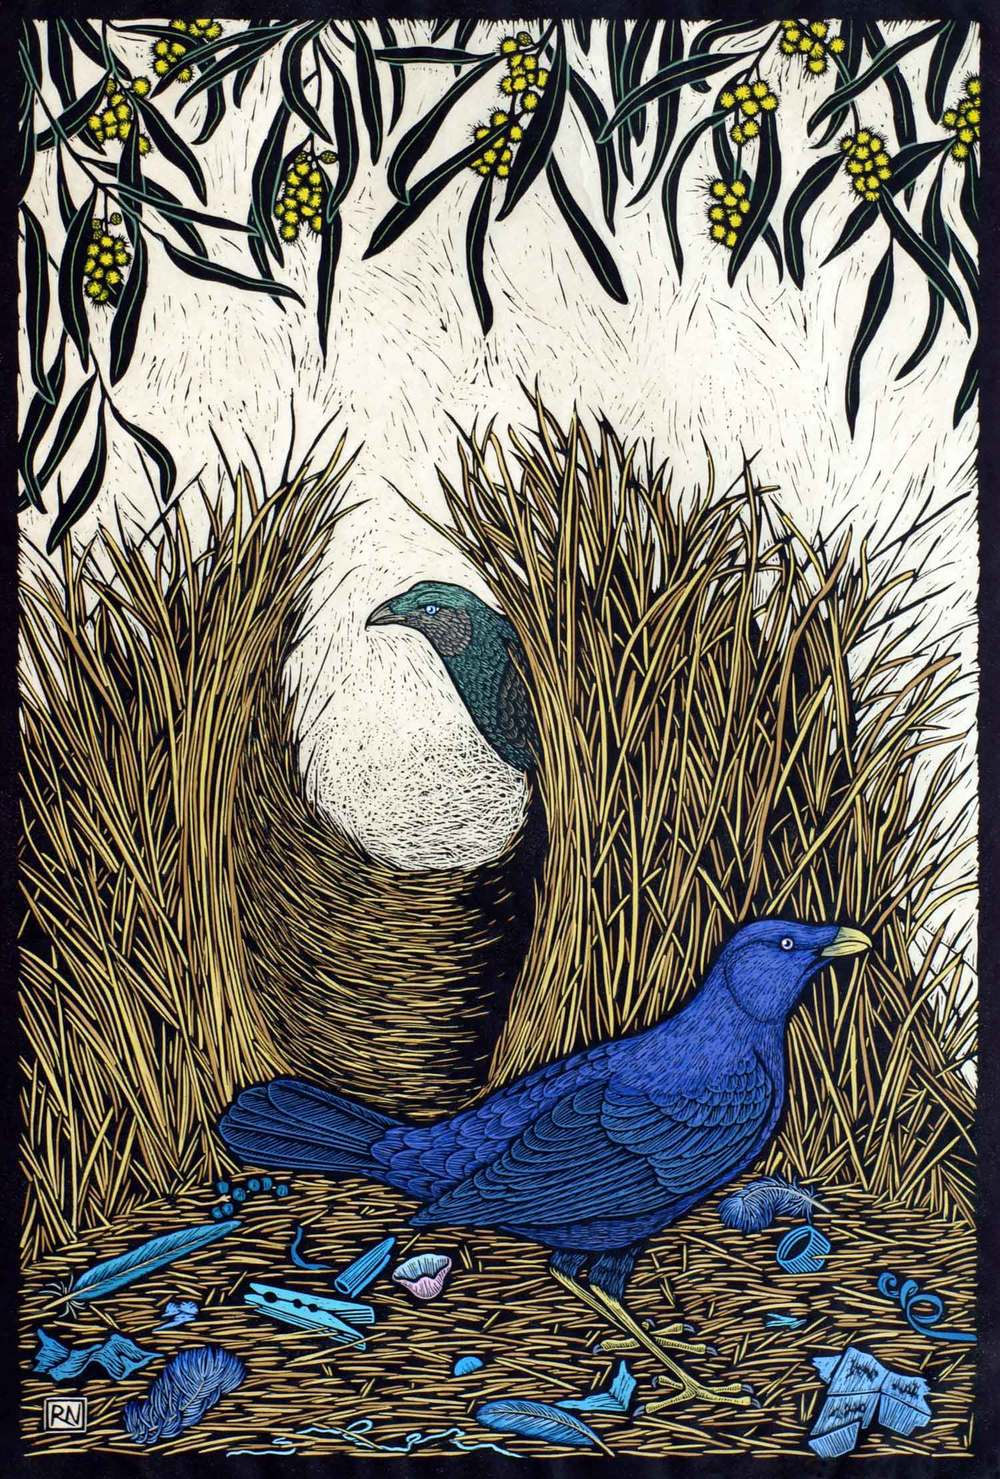 satin-bower-bird-linocut-rachel-newling.jpg